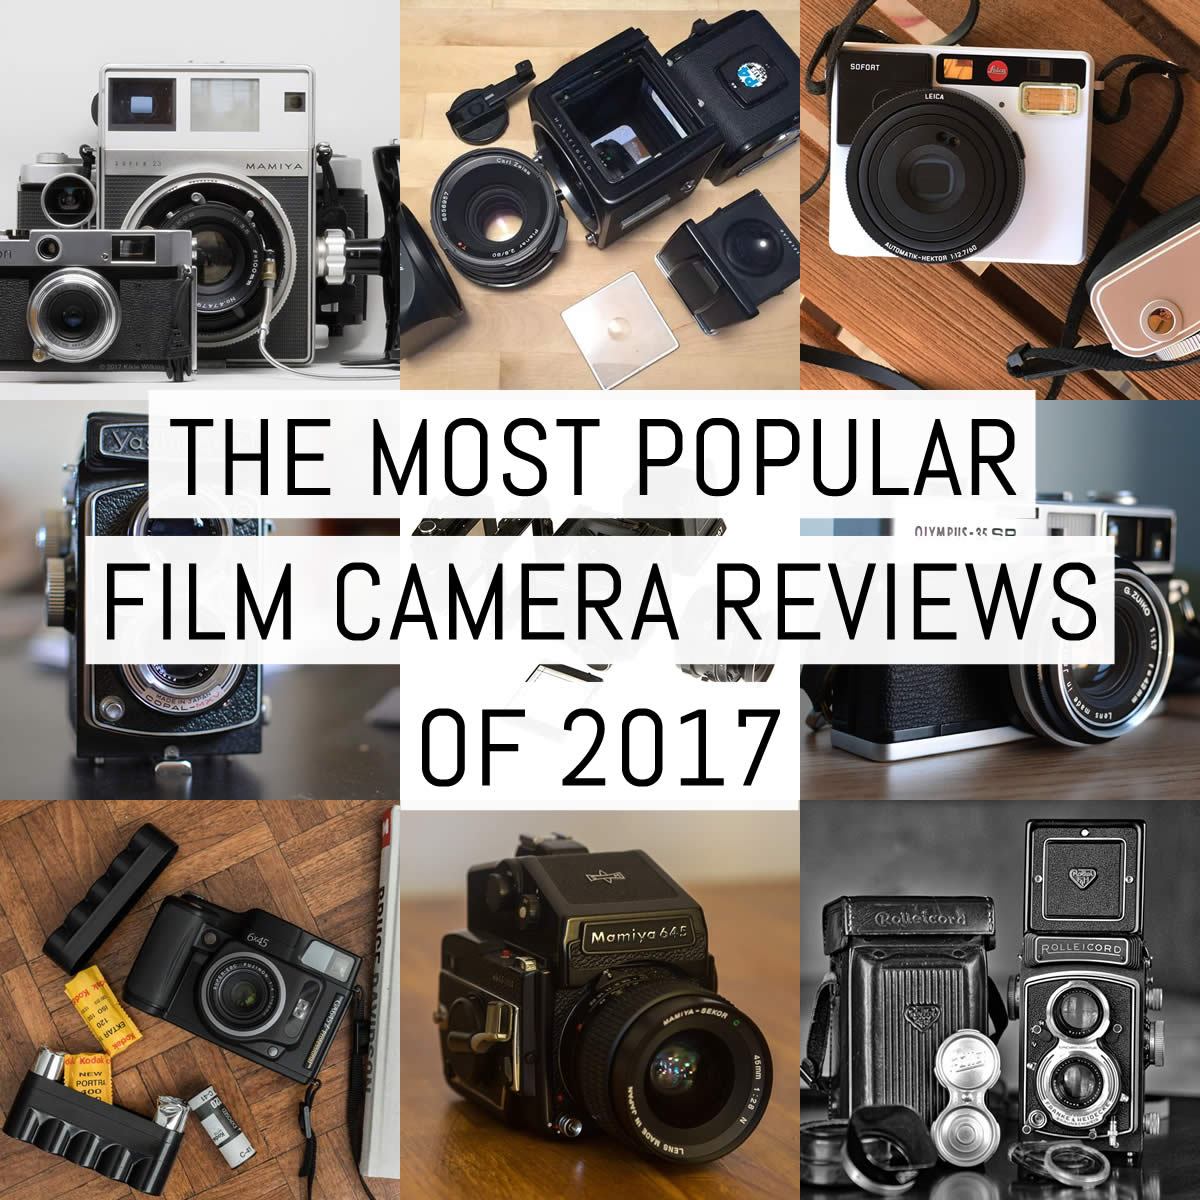 EMULSIVE's most popular film camera reviews of 2017